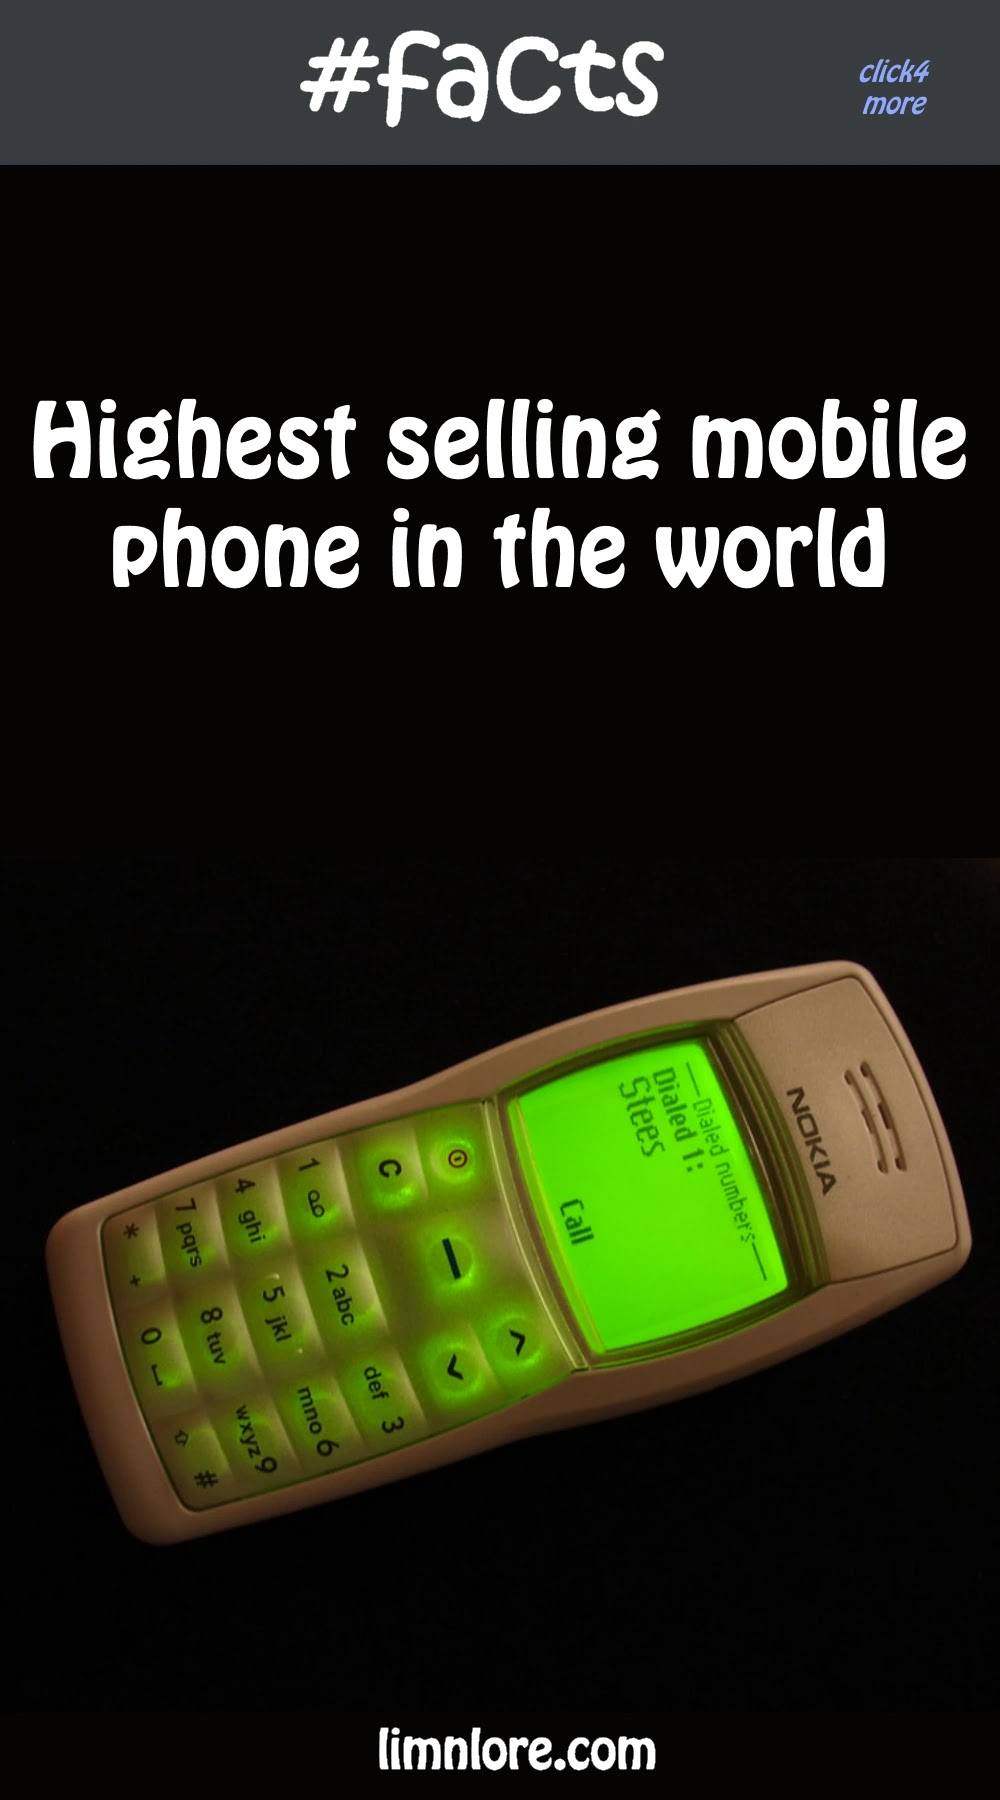 Do you know what is the highest selling phone in the world